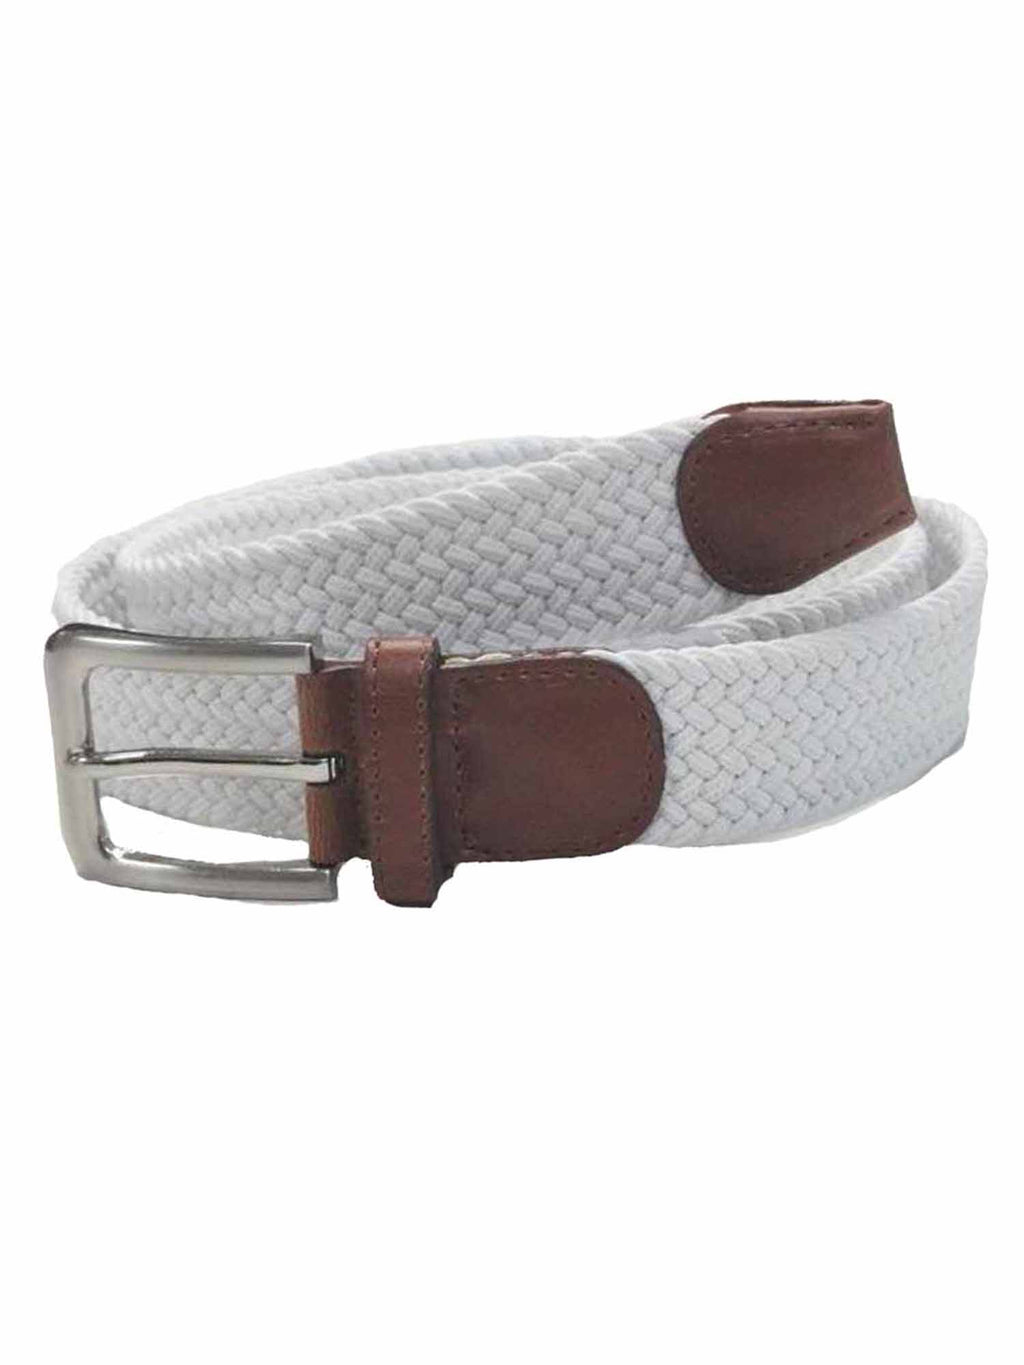 Gunmetal Buckle Leather Tip Braided Belt